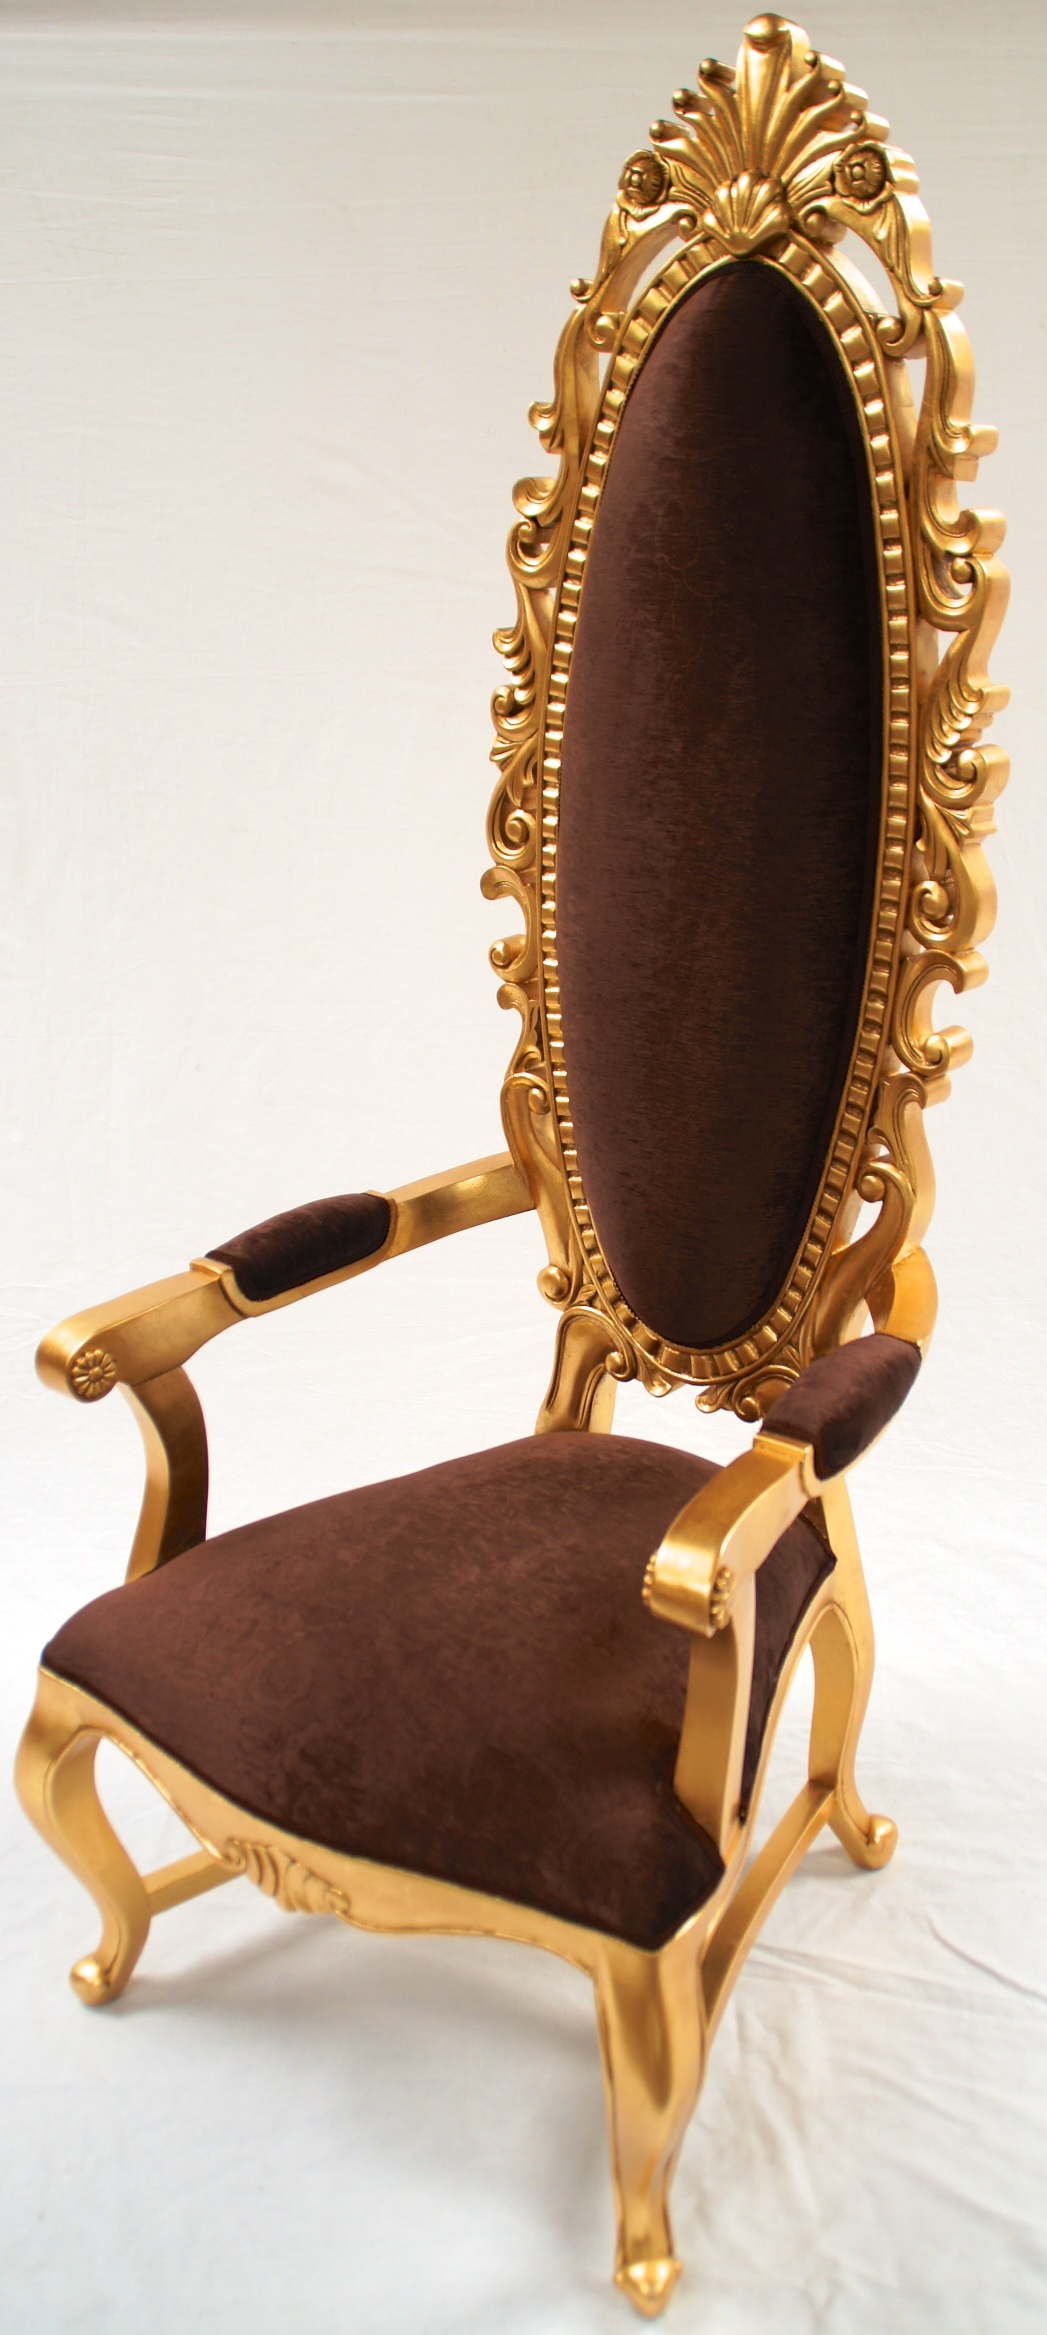 A Tall Elegant Milan Throne Hall Chair Feature Gold Leaf